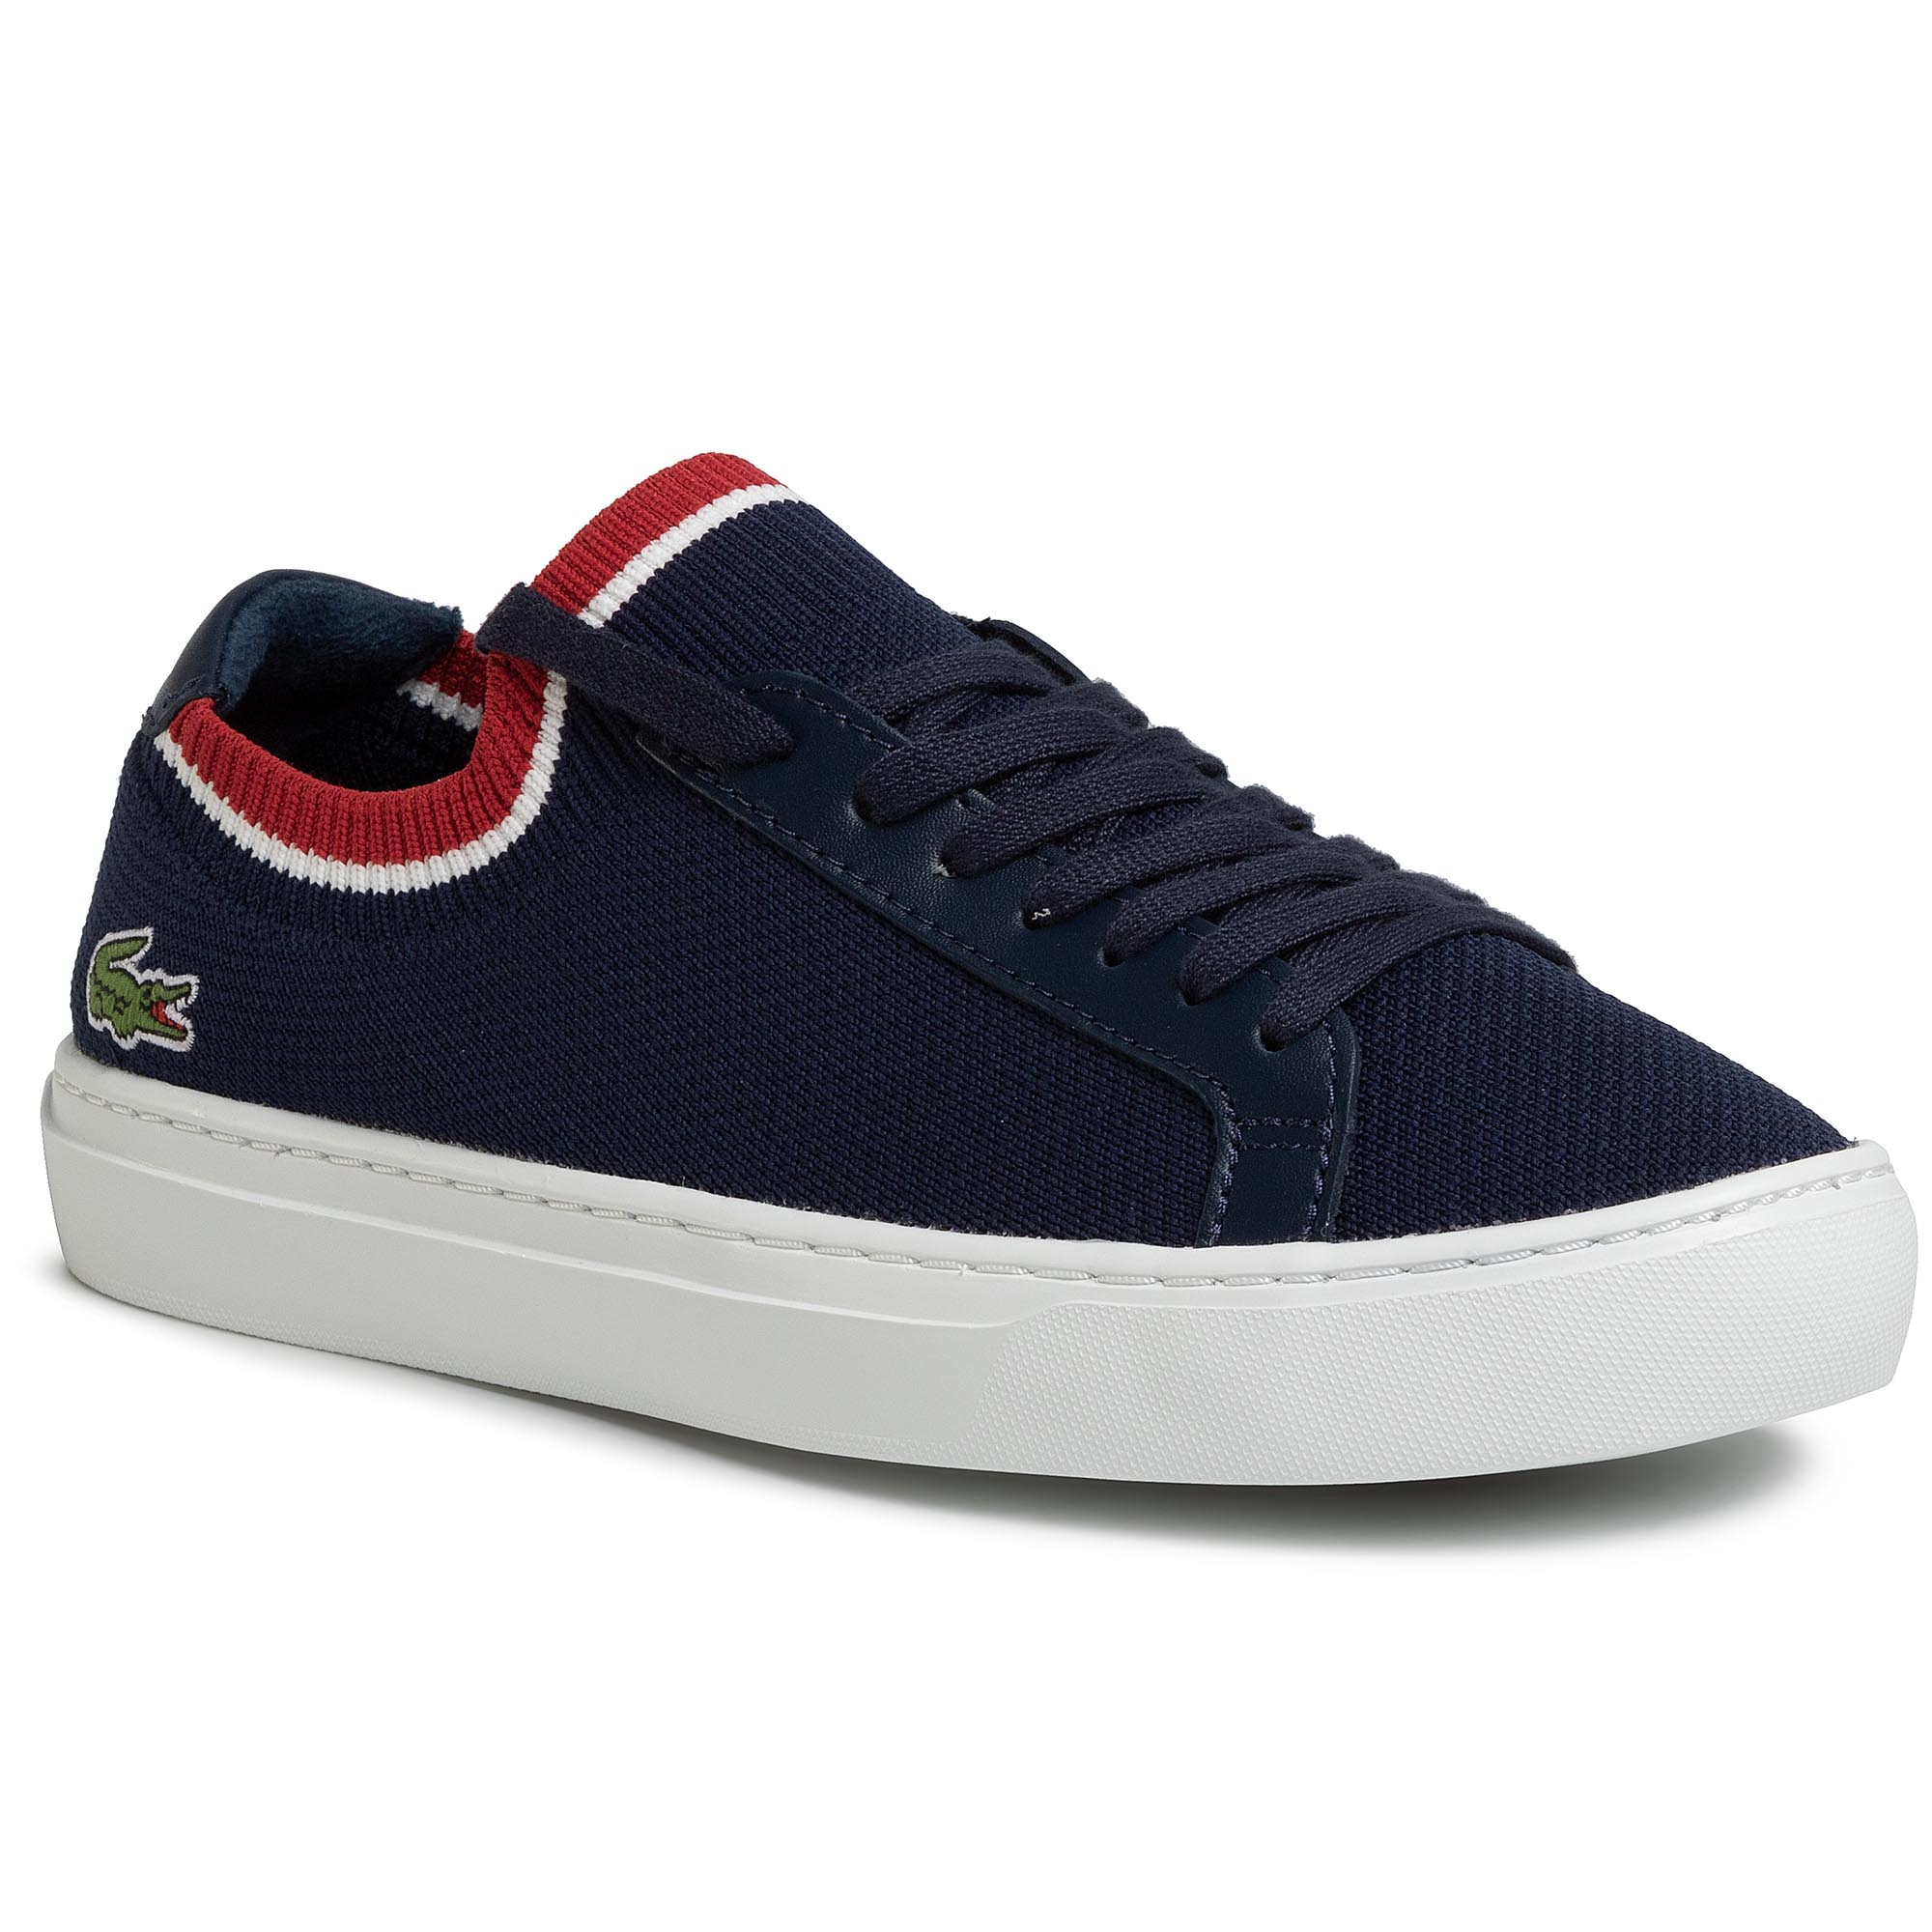 Sneakers LACOSTE - La Piquee 119 1 Cma 7-37CMA00387A2 Nvy/Wht/Red